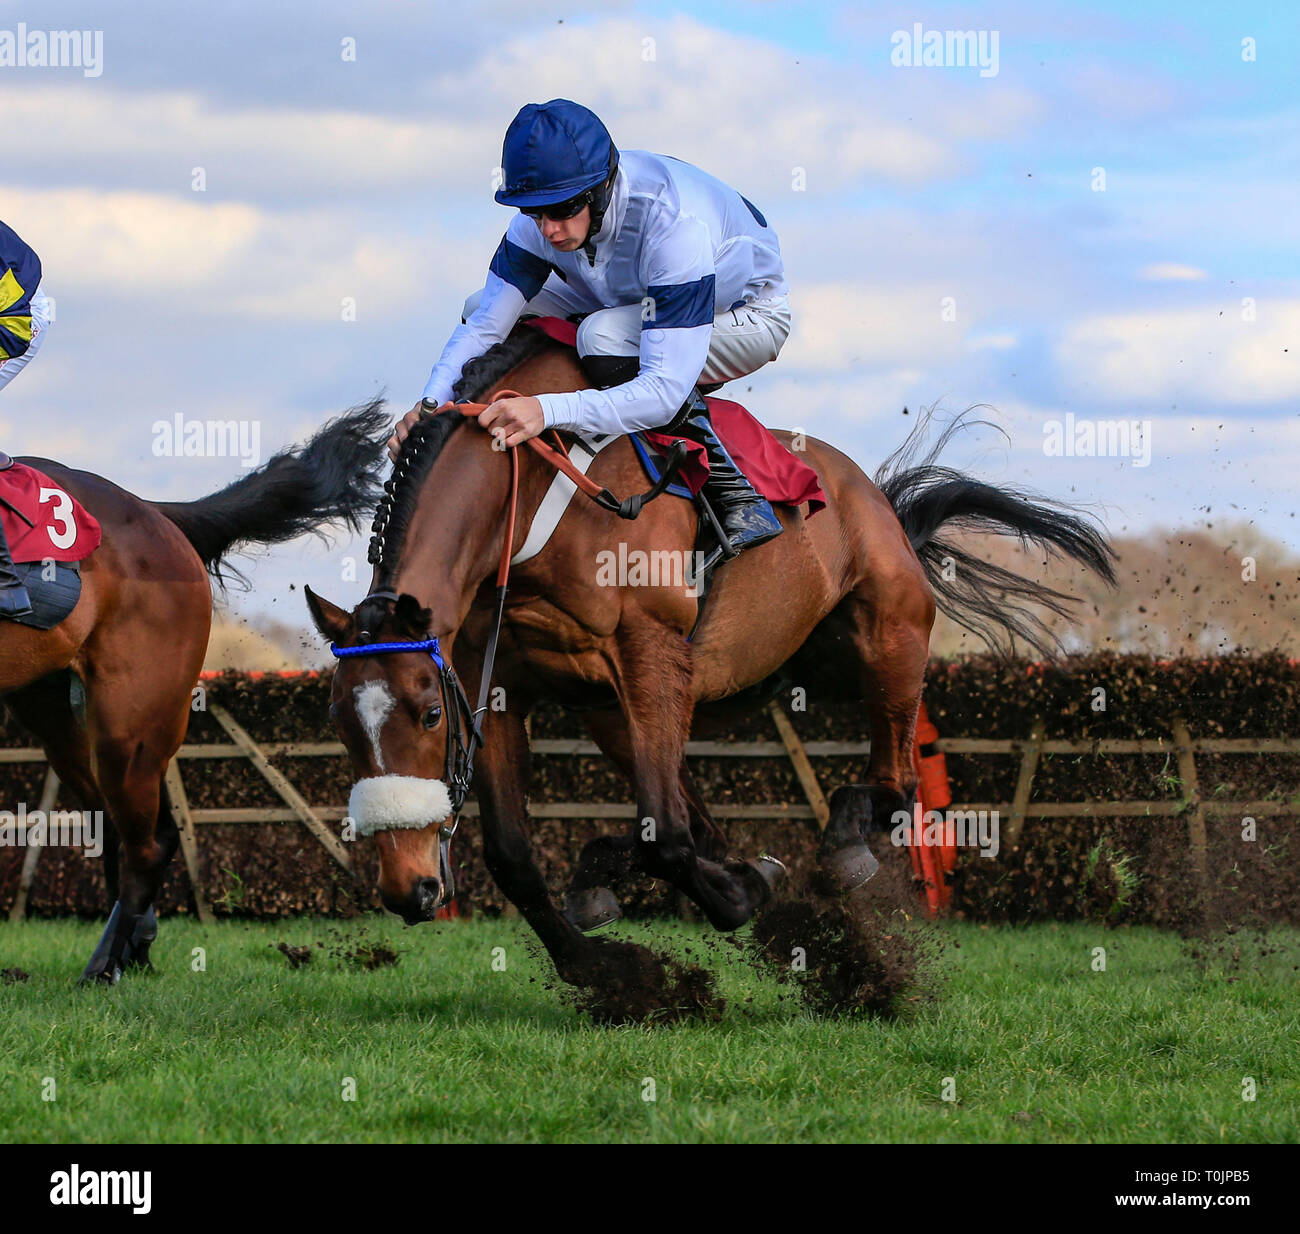 Haydock Park Racecourse, Merseyside, UK  20th Mar, 2019  Horse